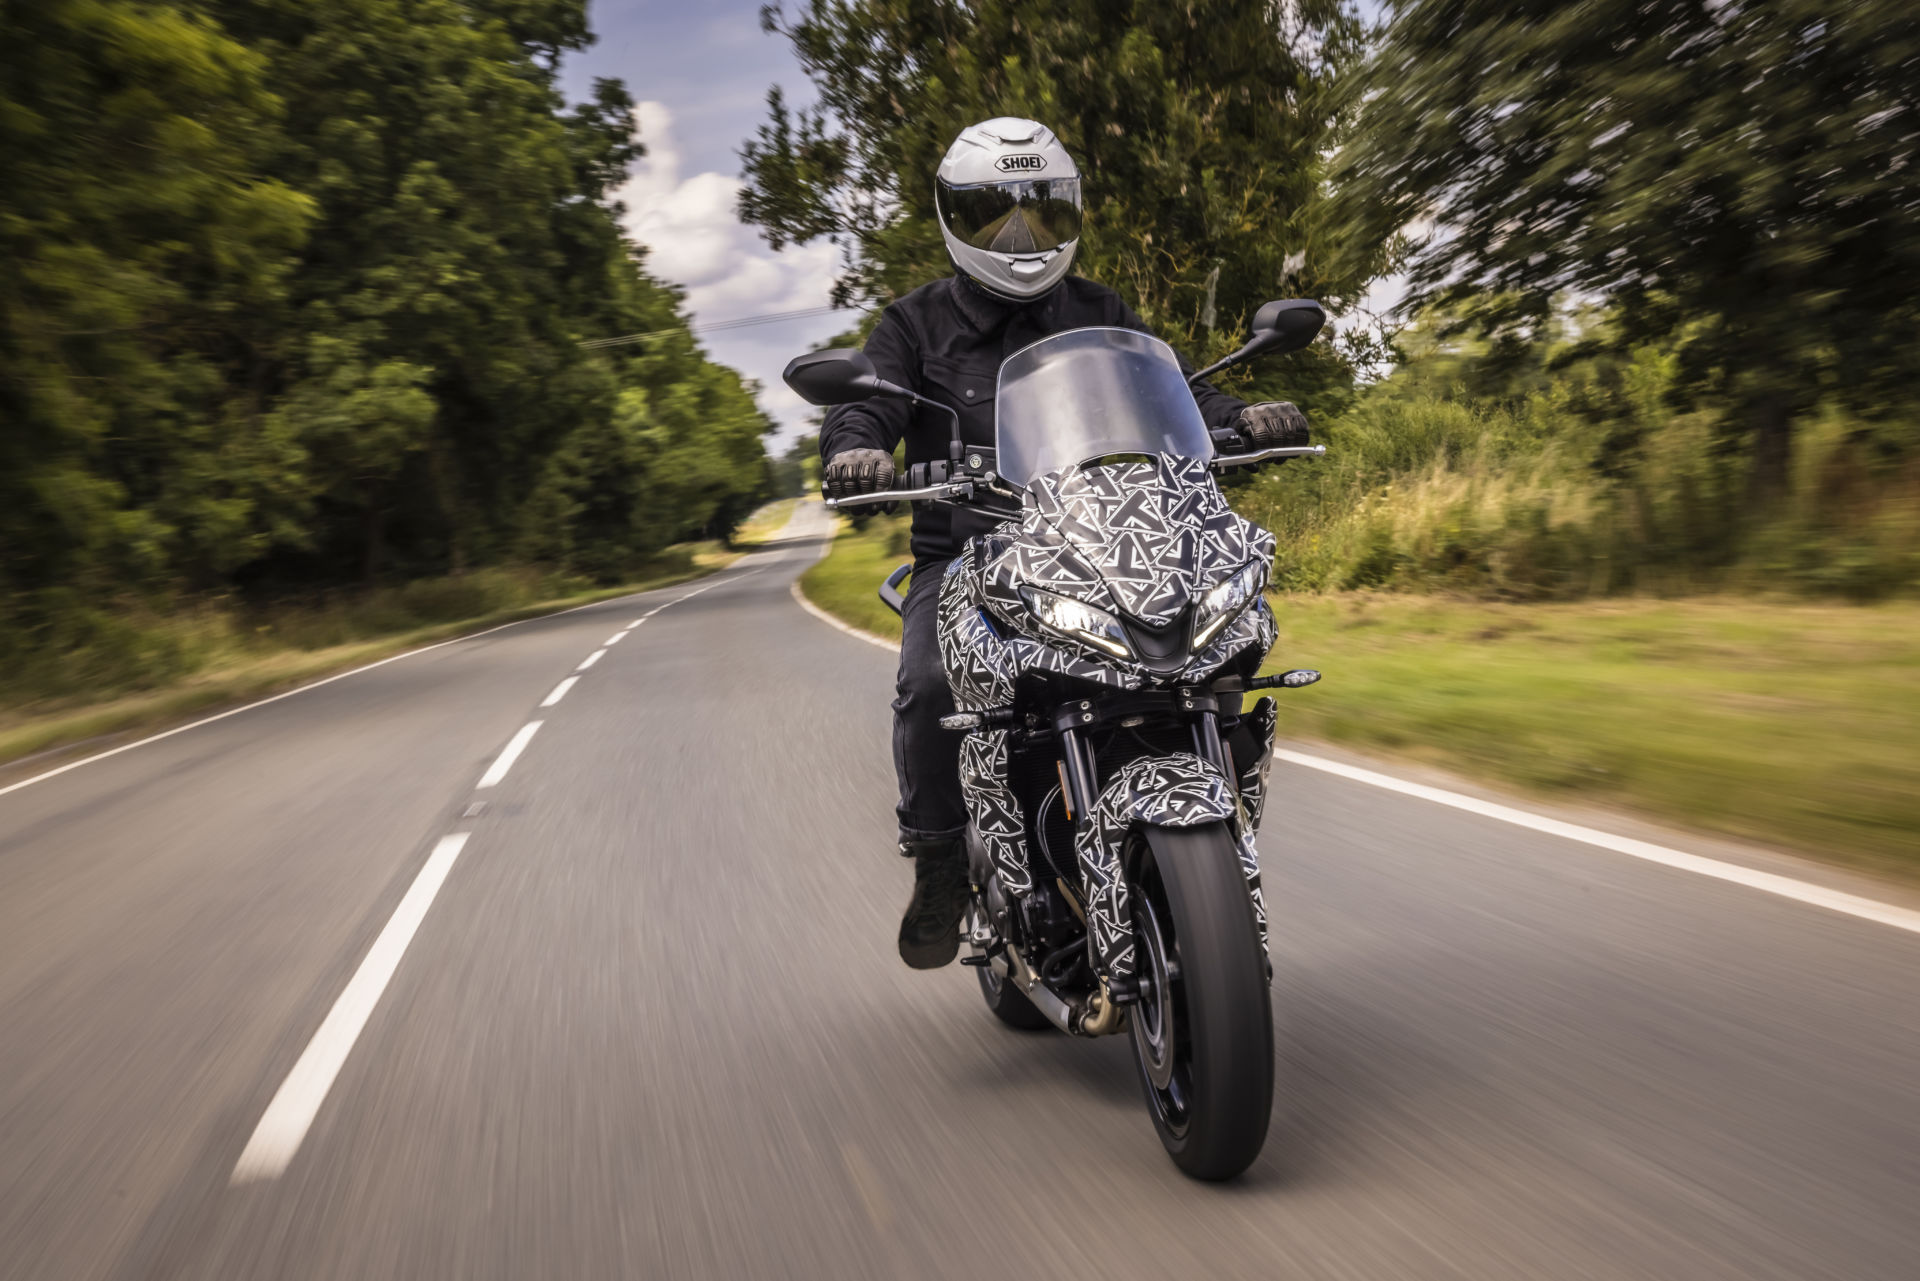 A Triumph Tiger Sport 660 prototype being testing on a public road. Photo courtesy Triumph.